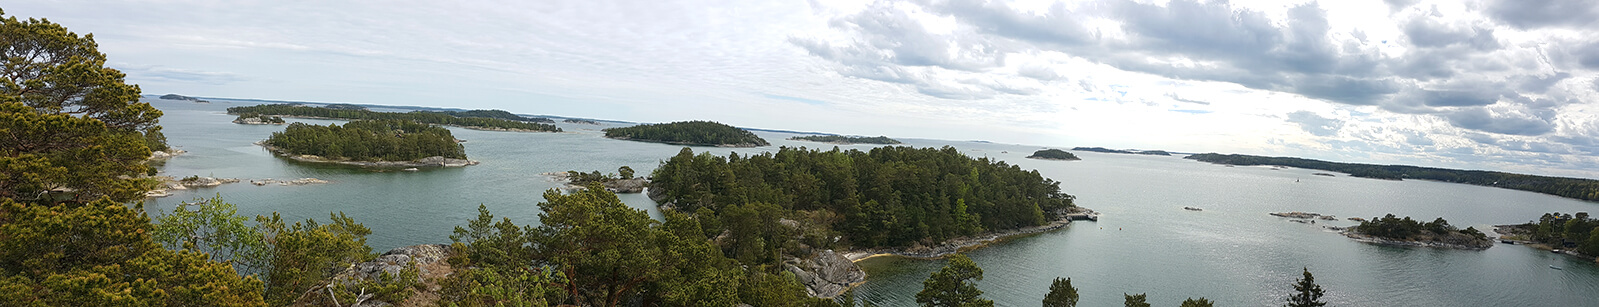 b-light-organic-clothing-leni-philip-yogaretreat-stockholm-archipelago-6